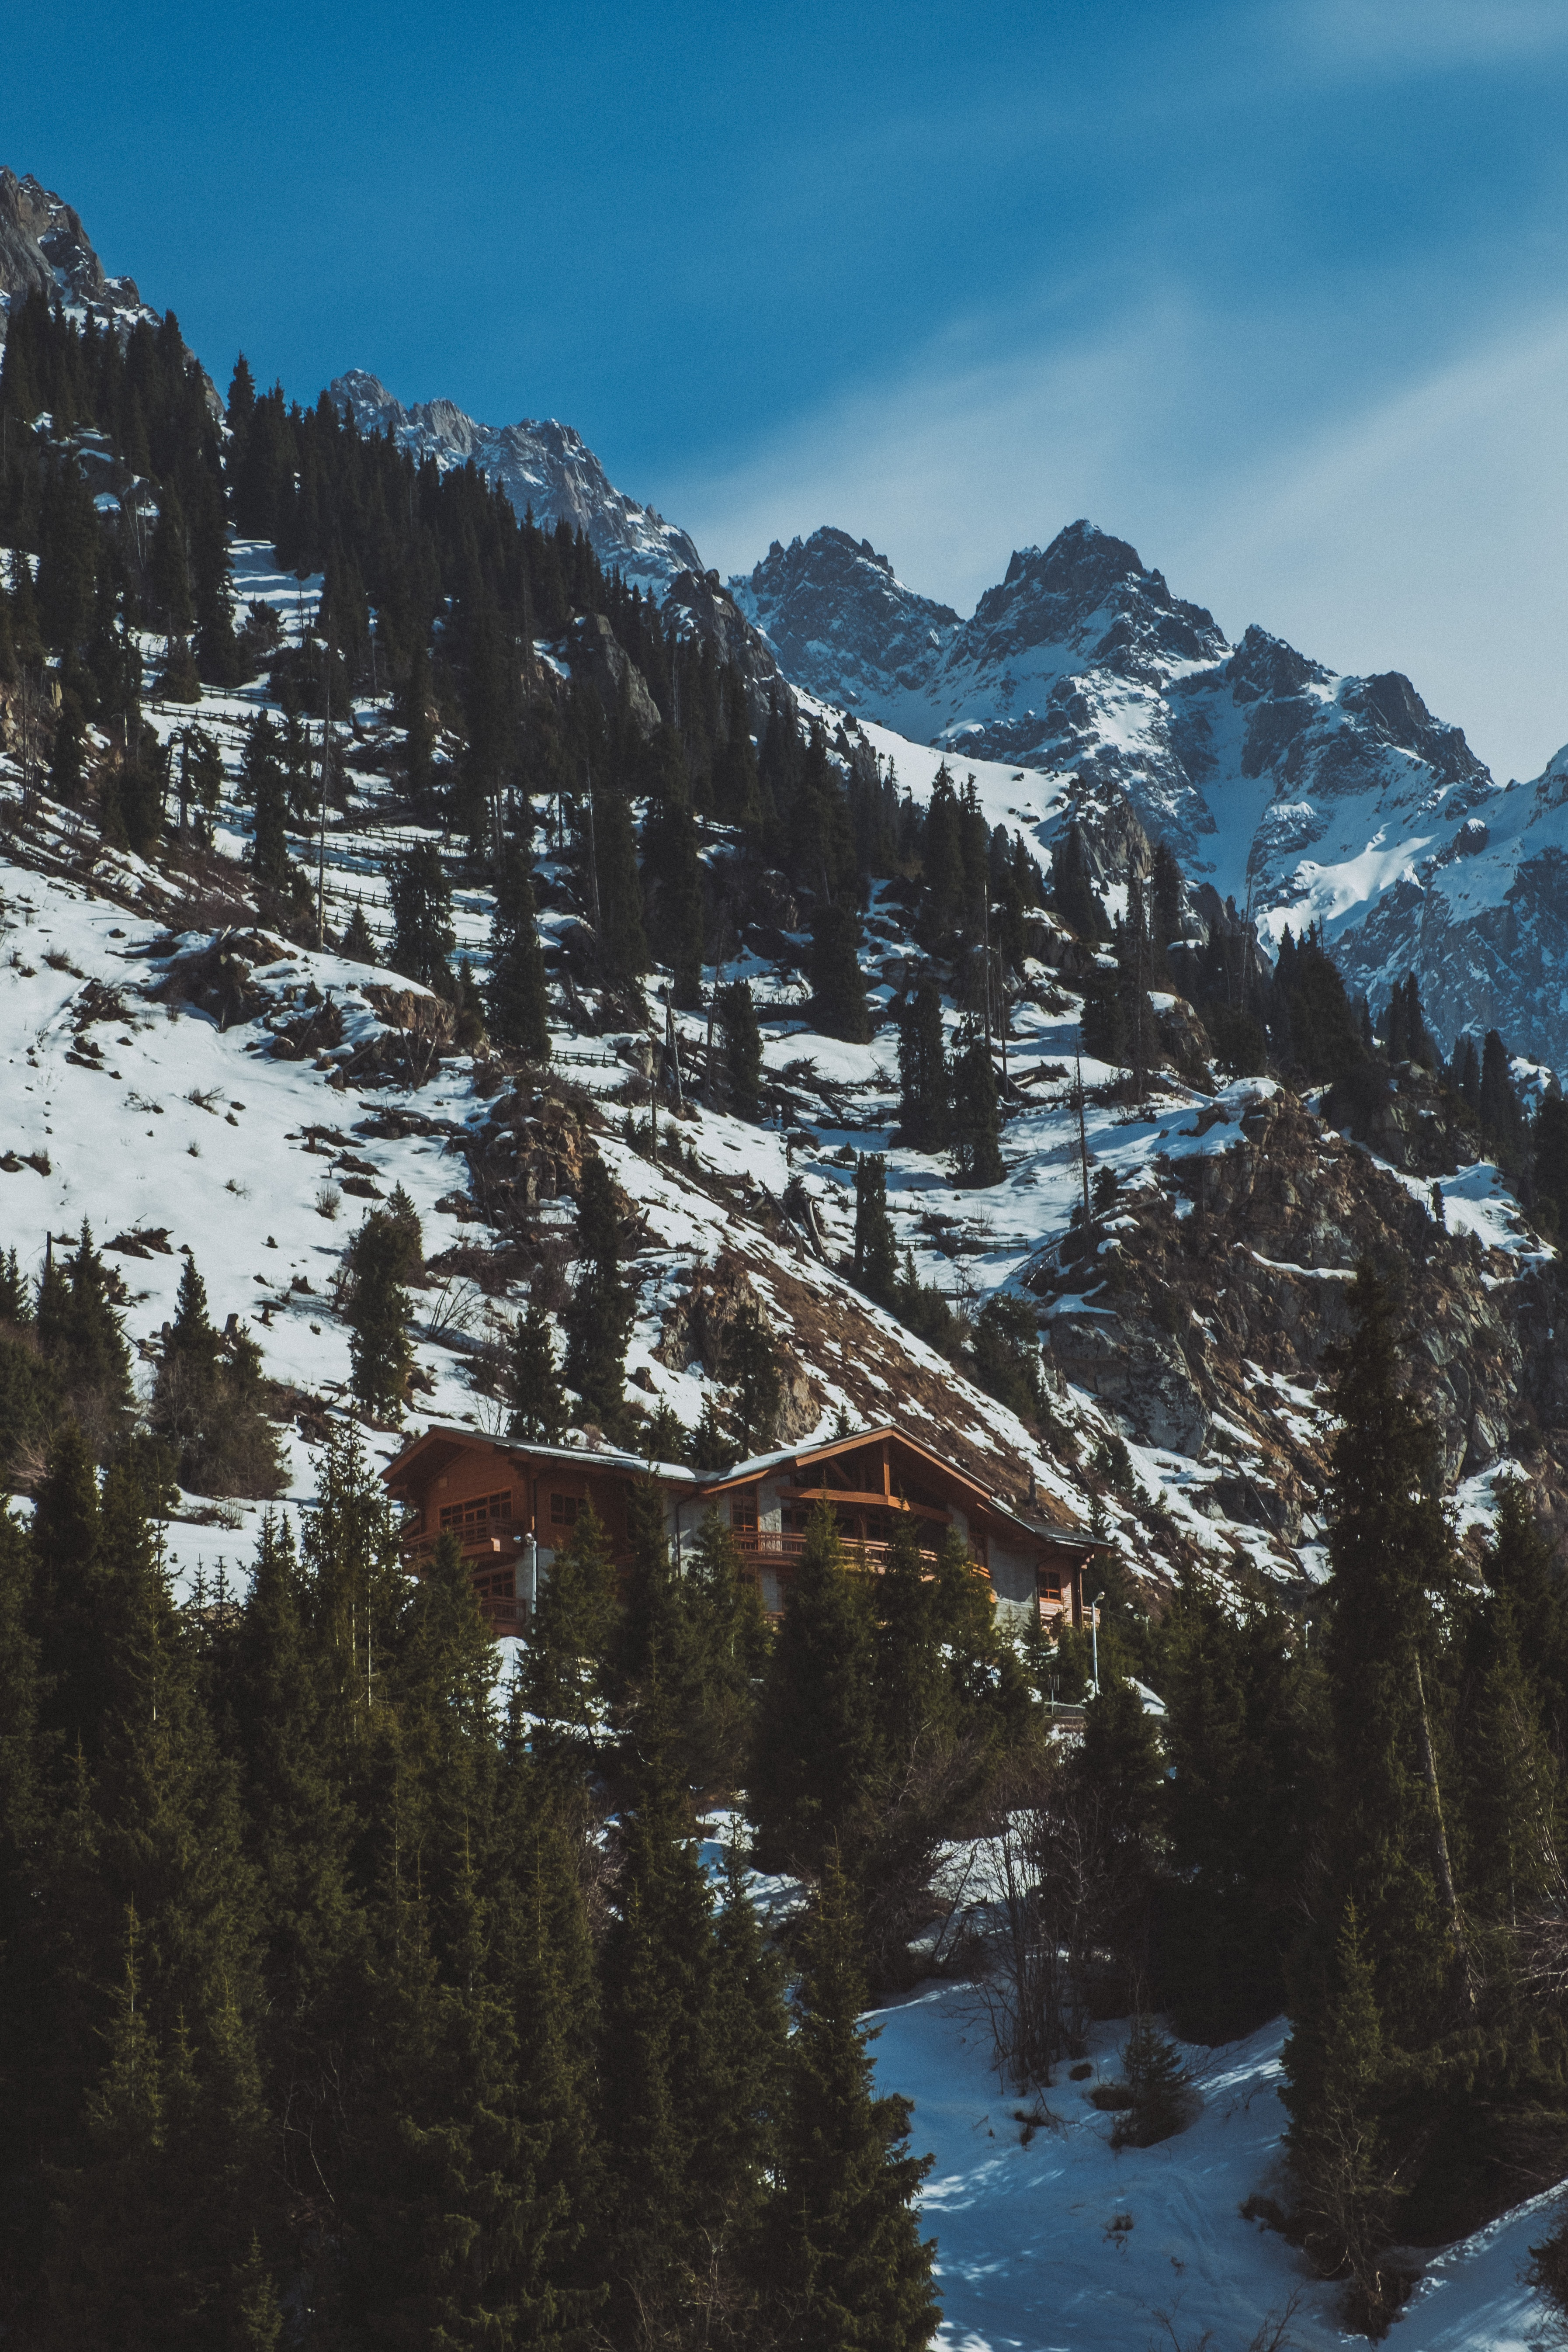 cabin near trees and glacier mountains during day